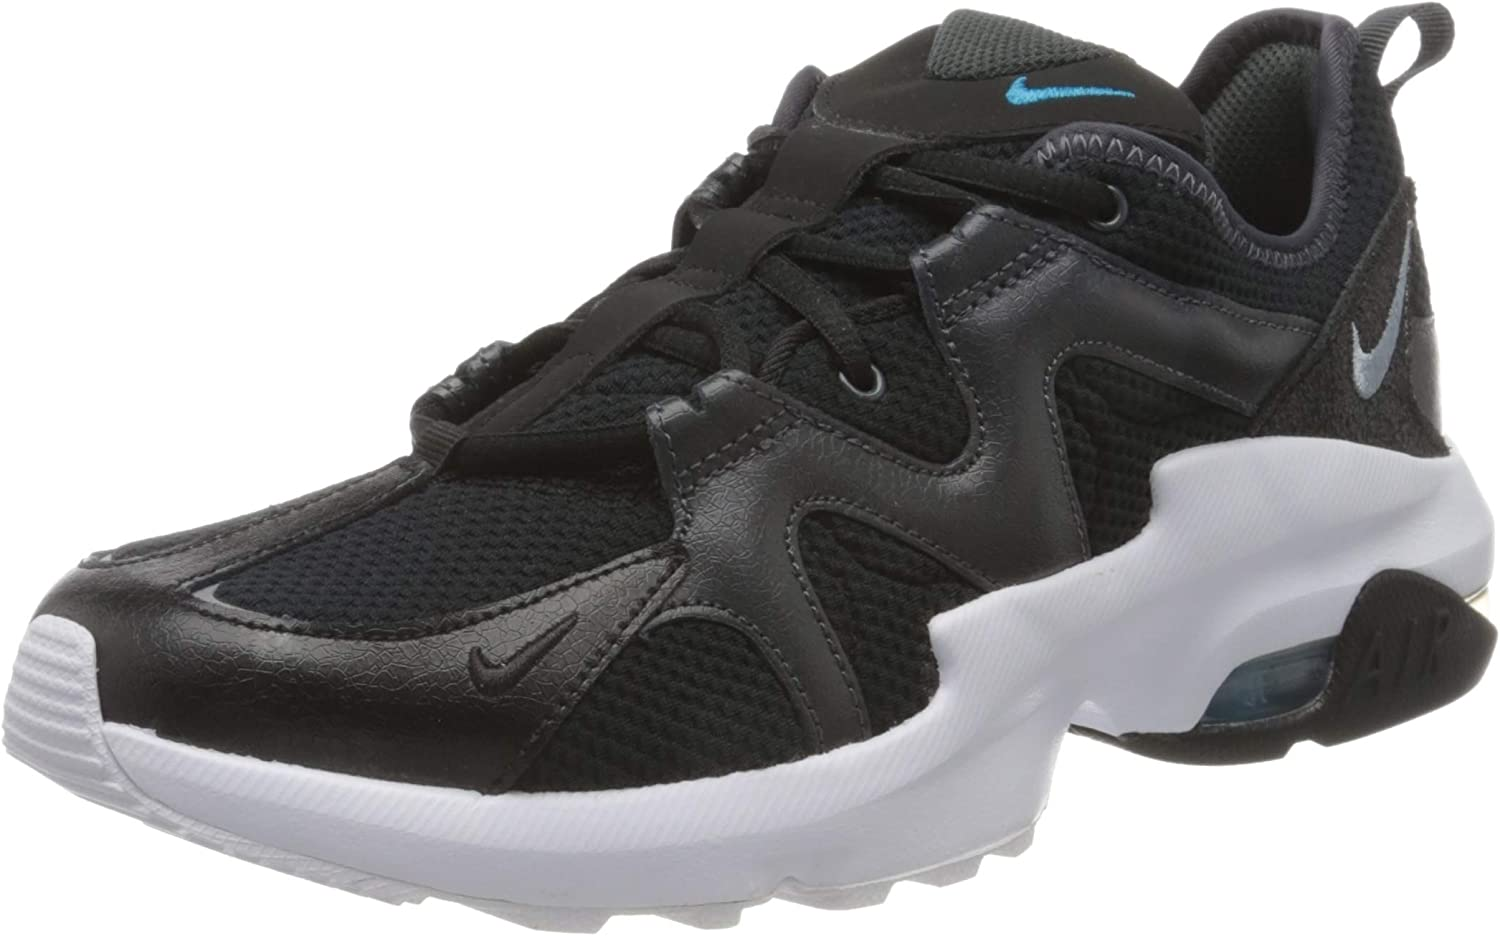 Nike Genuine Unisex-Adult Low-top Trainers Product Sneaker